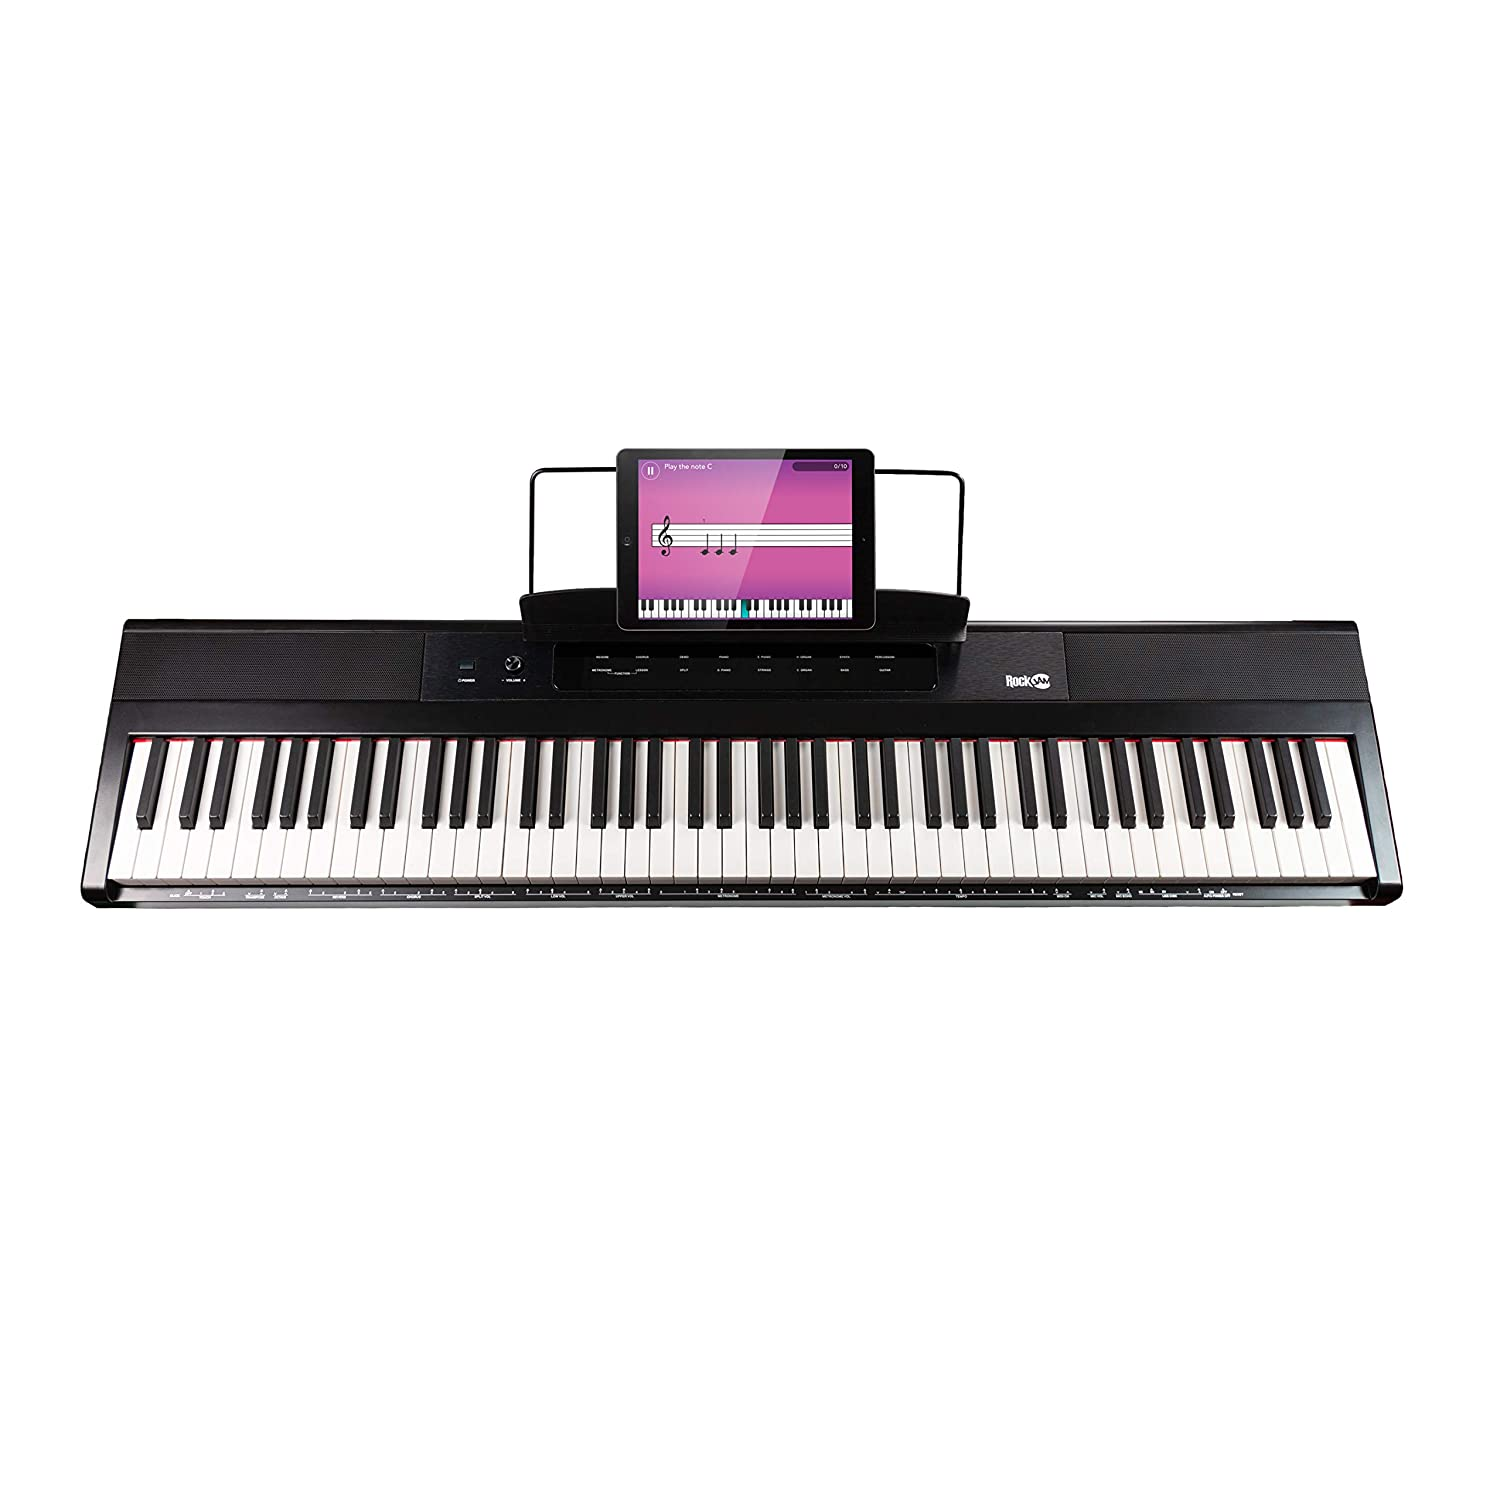 88 key beginner digital piano keyboard full size semi weighted keys learn music ebay. Black Bedroom Furniture Sets. Home Design Ideas